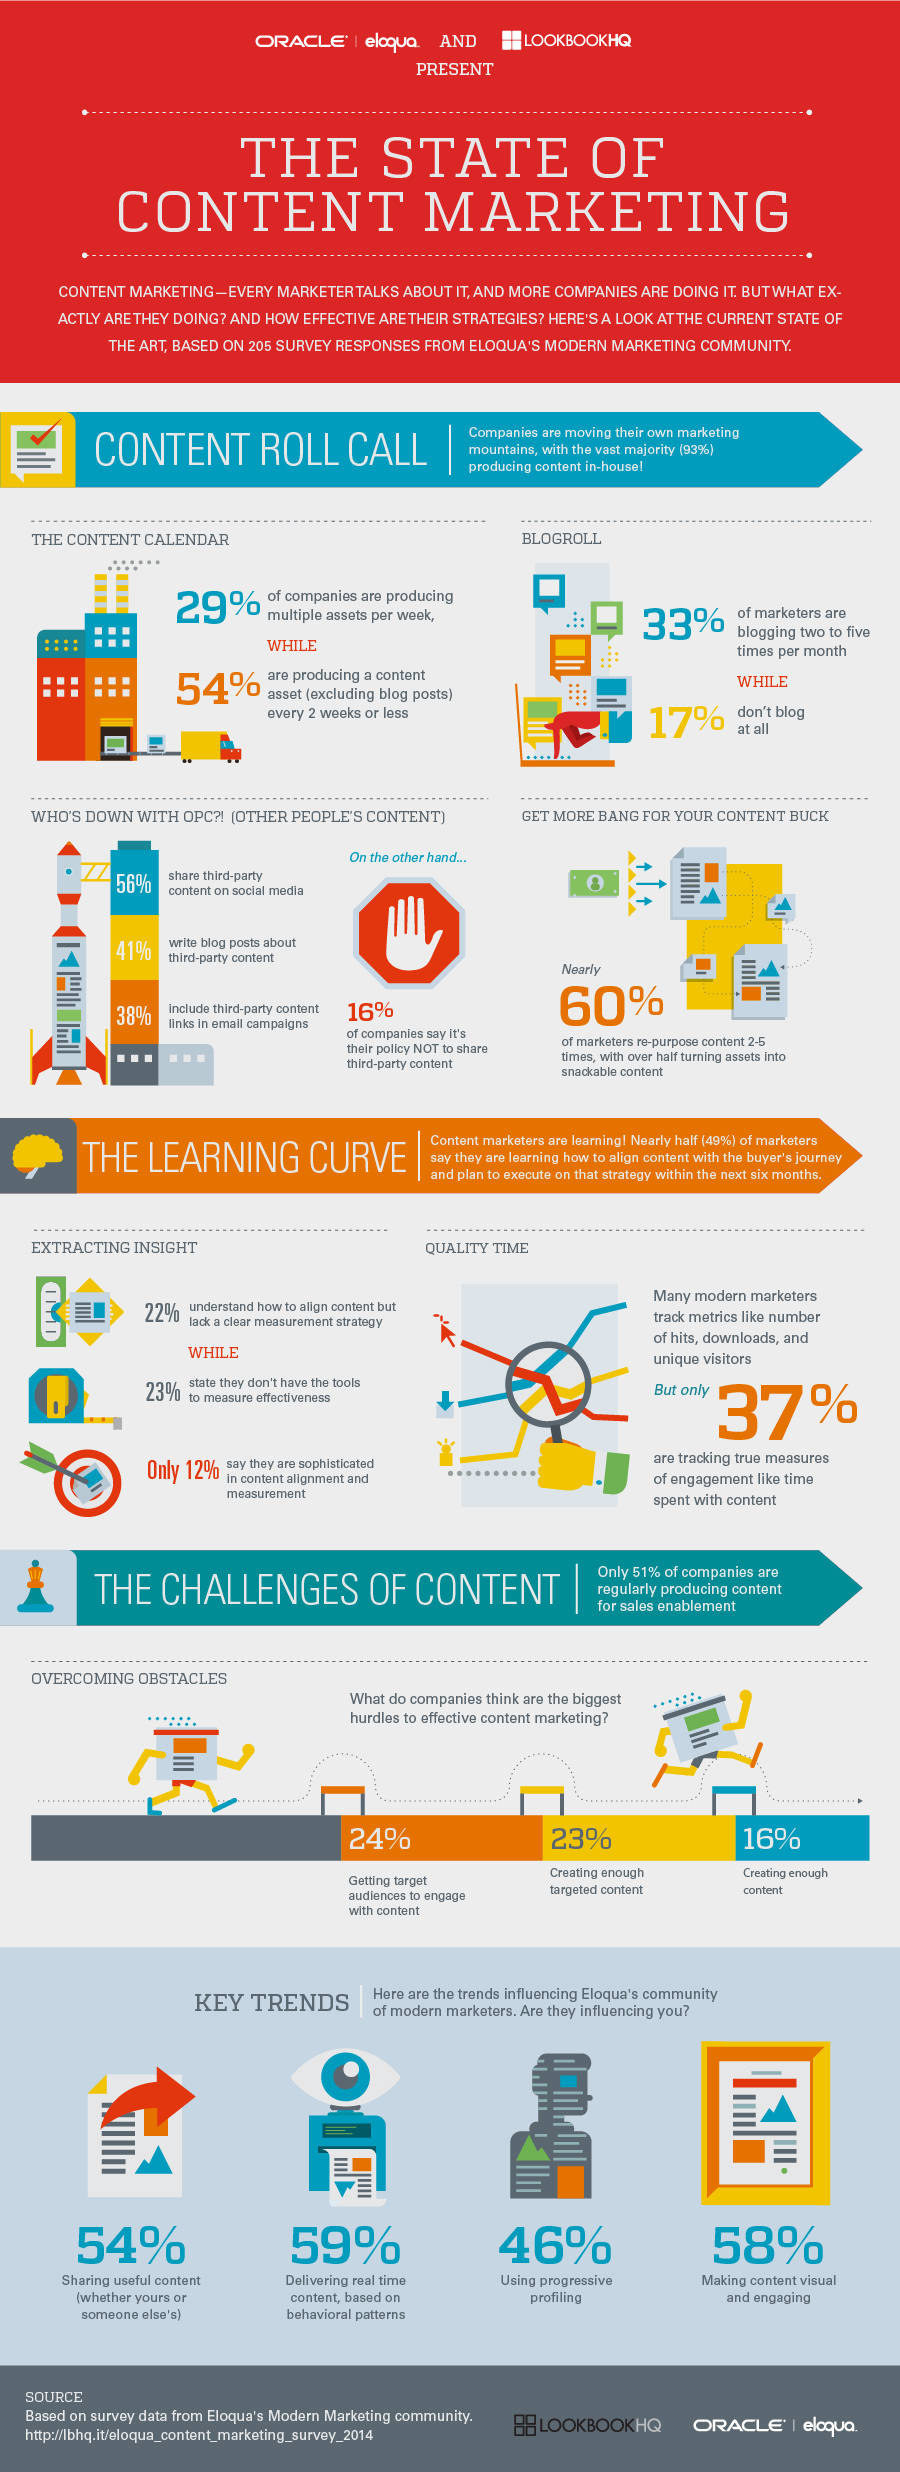 The State of Content Marketing 2014 [Infographic]